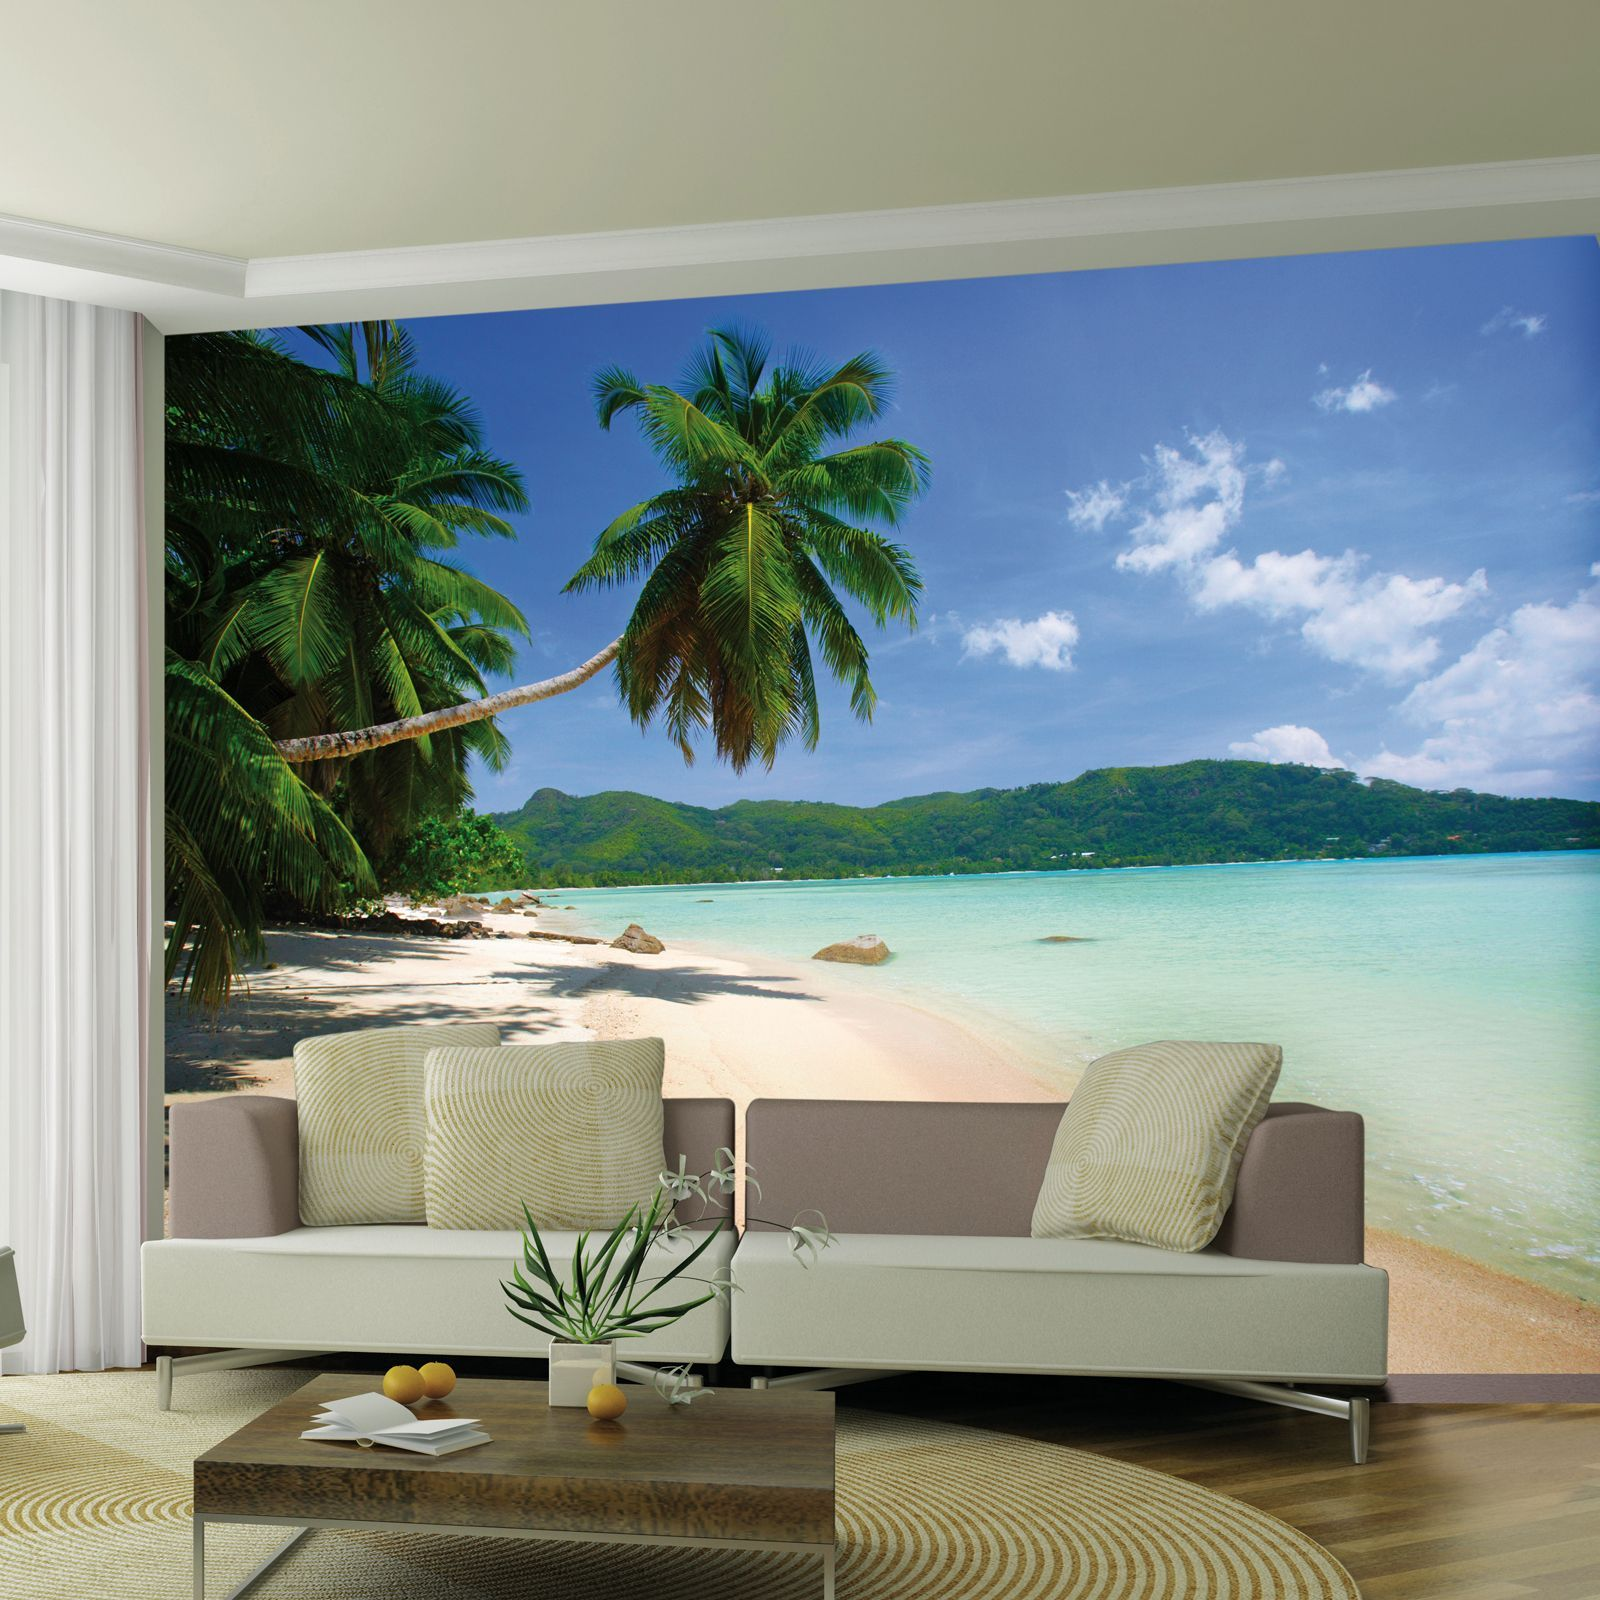 Large wallpaper feature wall murals landscapes for Wallpaper images for house walls